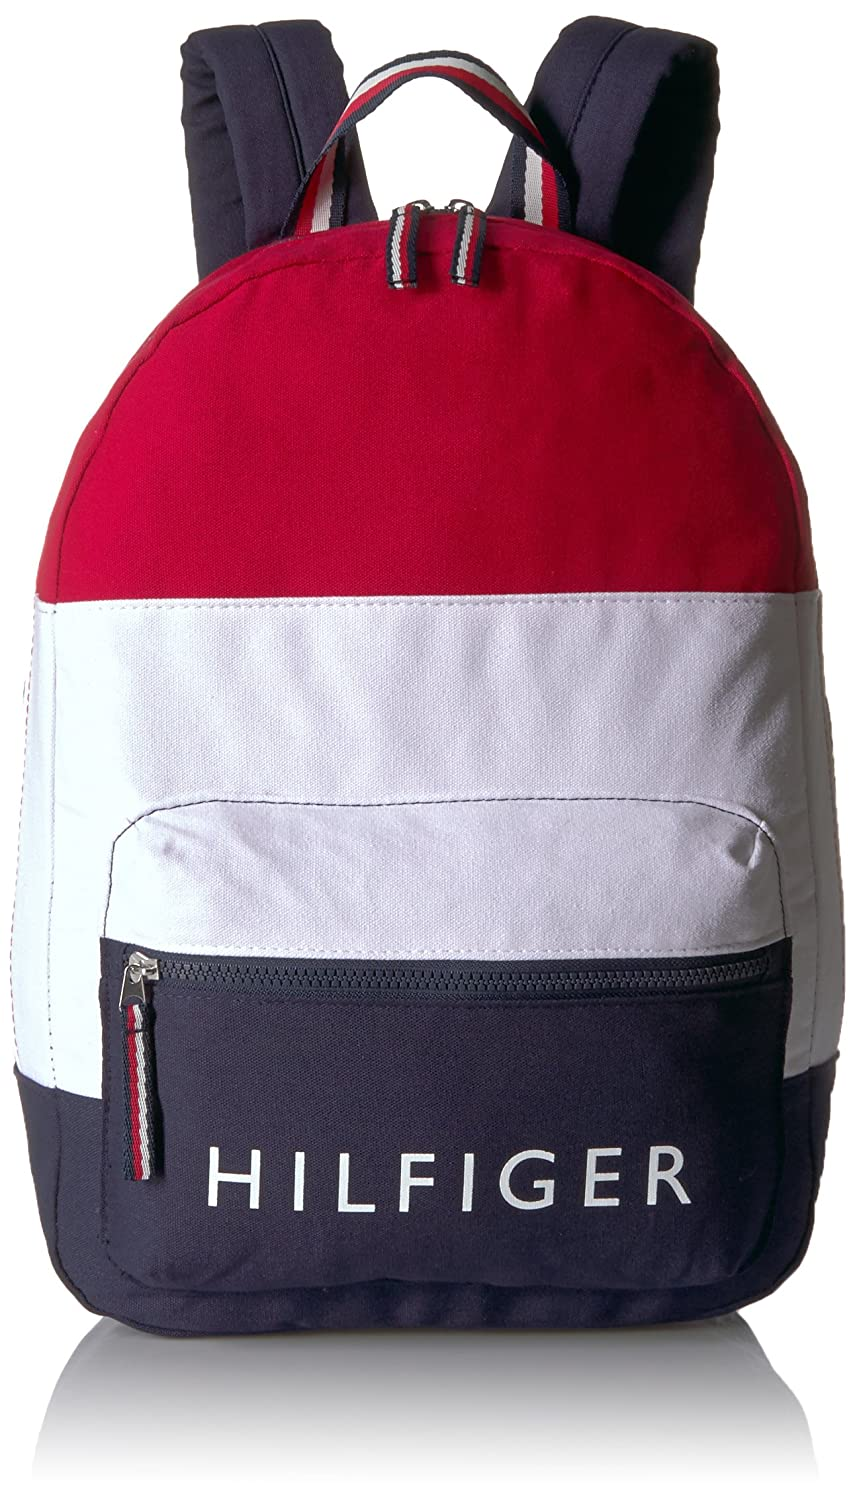 Tommy Hilfiger Women's Backpack Patriot Colorblock Canvas, Navy/Red/White 6943967